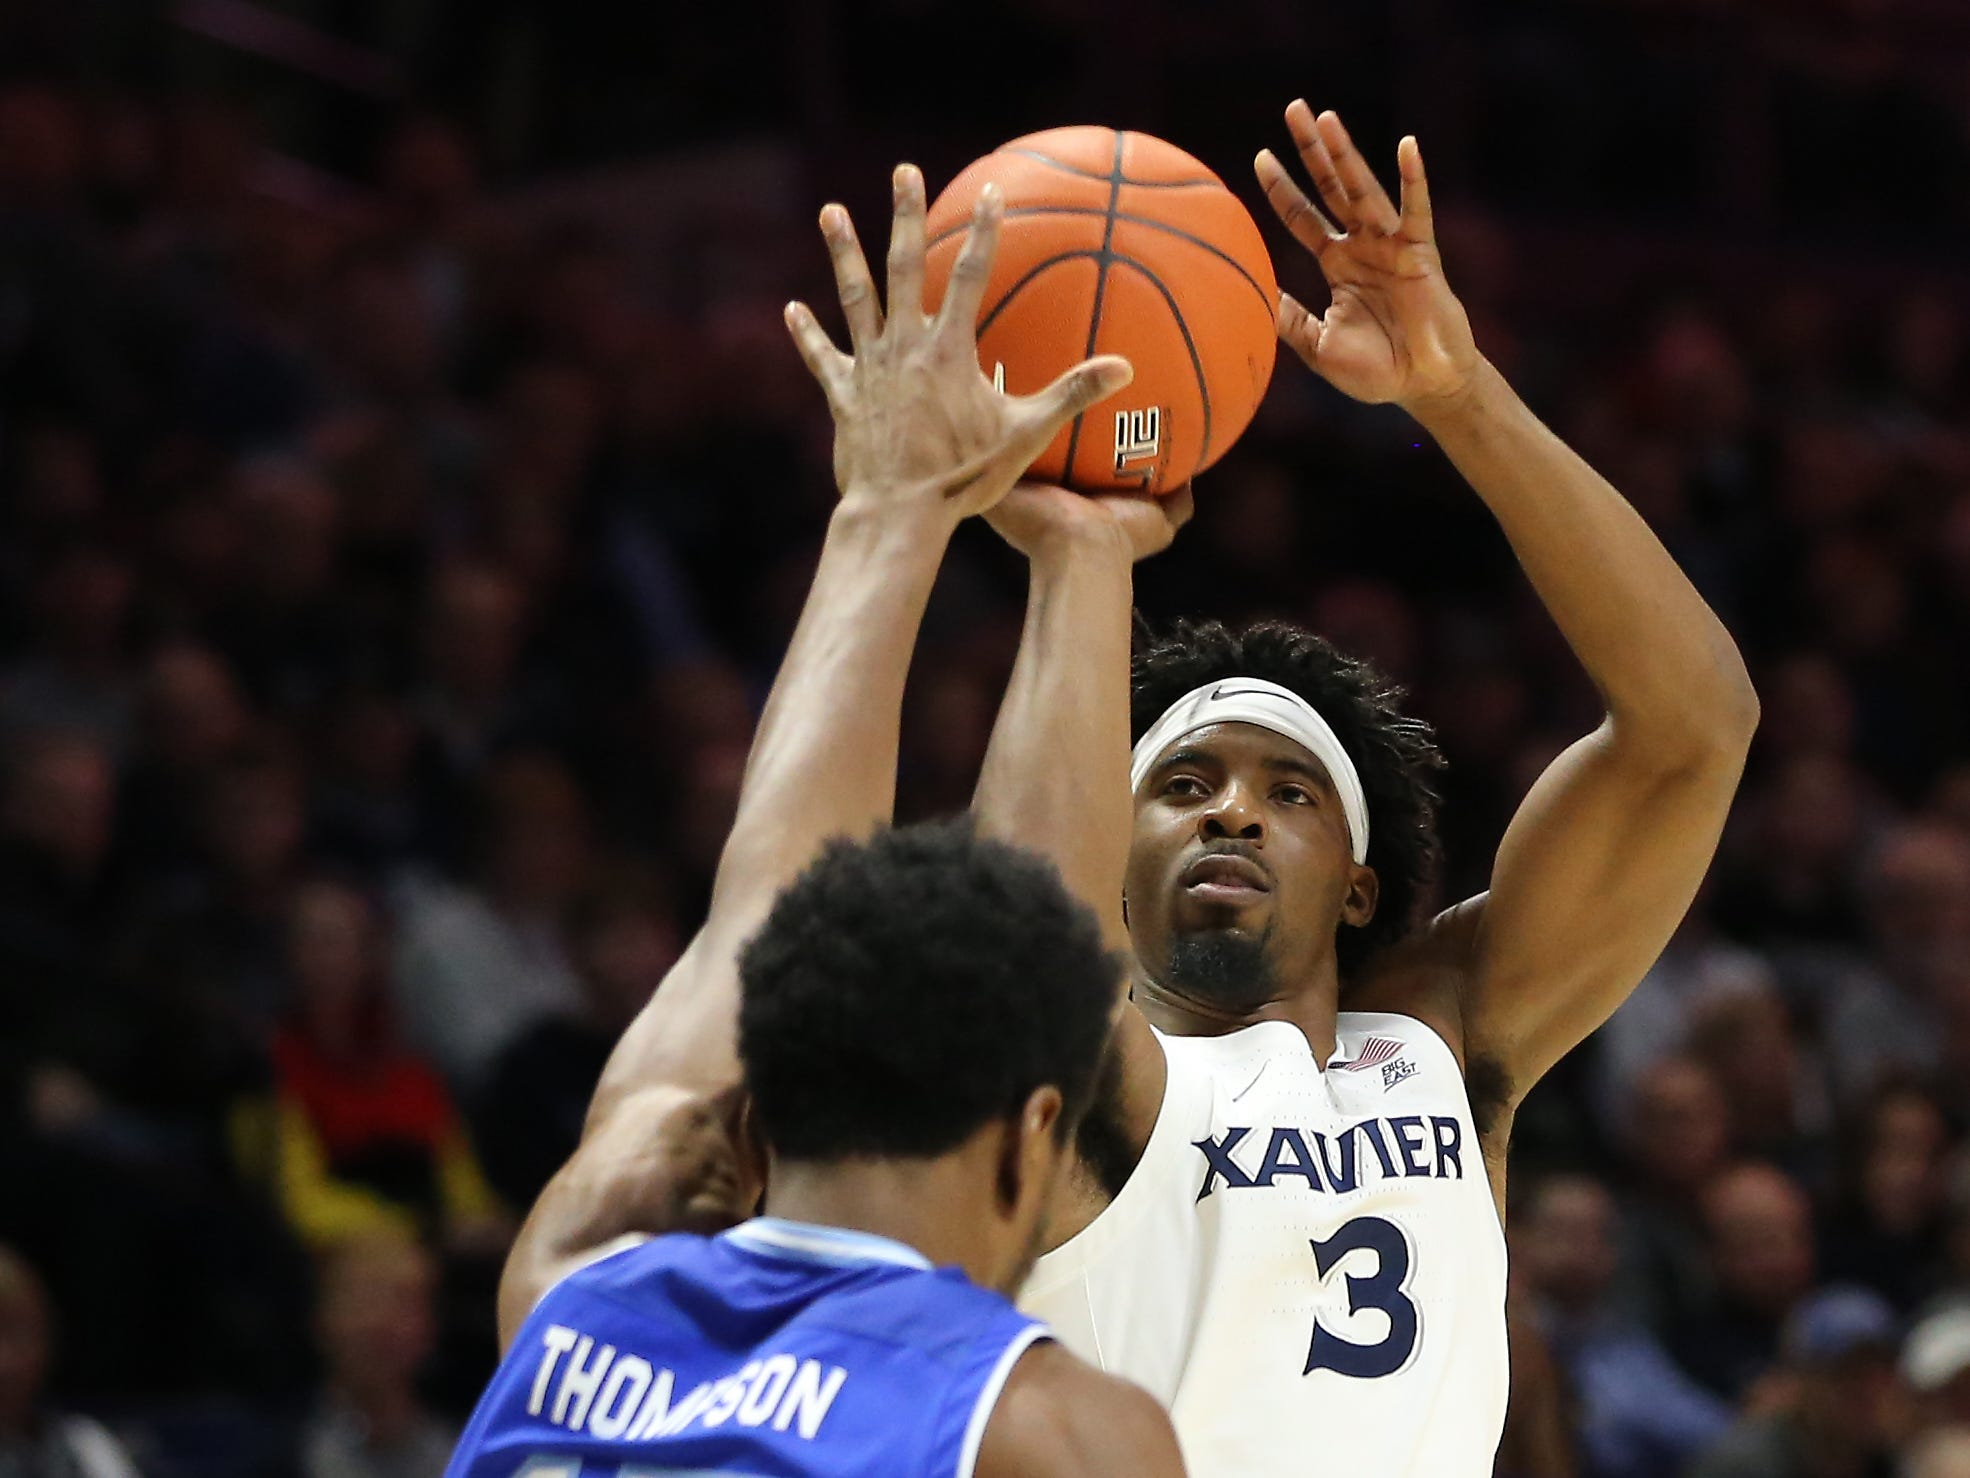 Xavier Musketeers guard Quentin Goodin (3) rises for a shot over Seton Hall Pirates forward Taurean Thompson (15) in the first half of an NCAA college basketball game, Wednesday, Jan. 2, 2019, at the Cintas Center in Cincinnati.